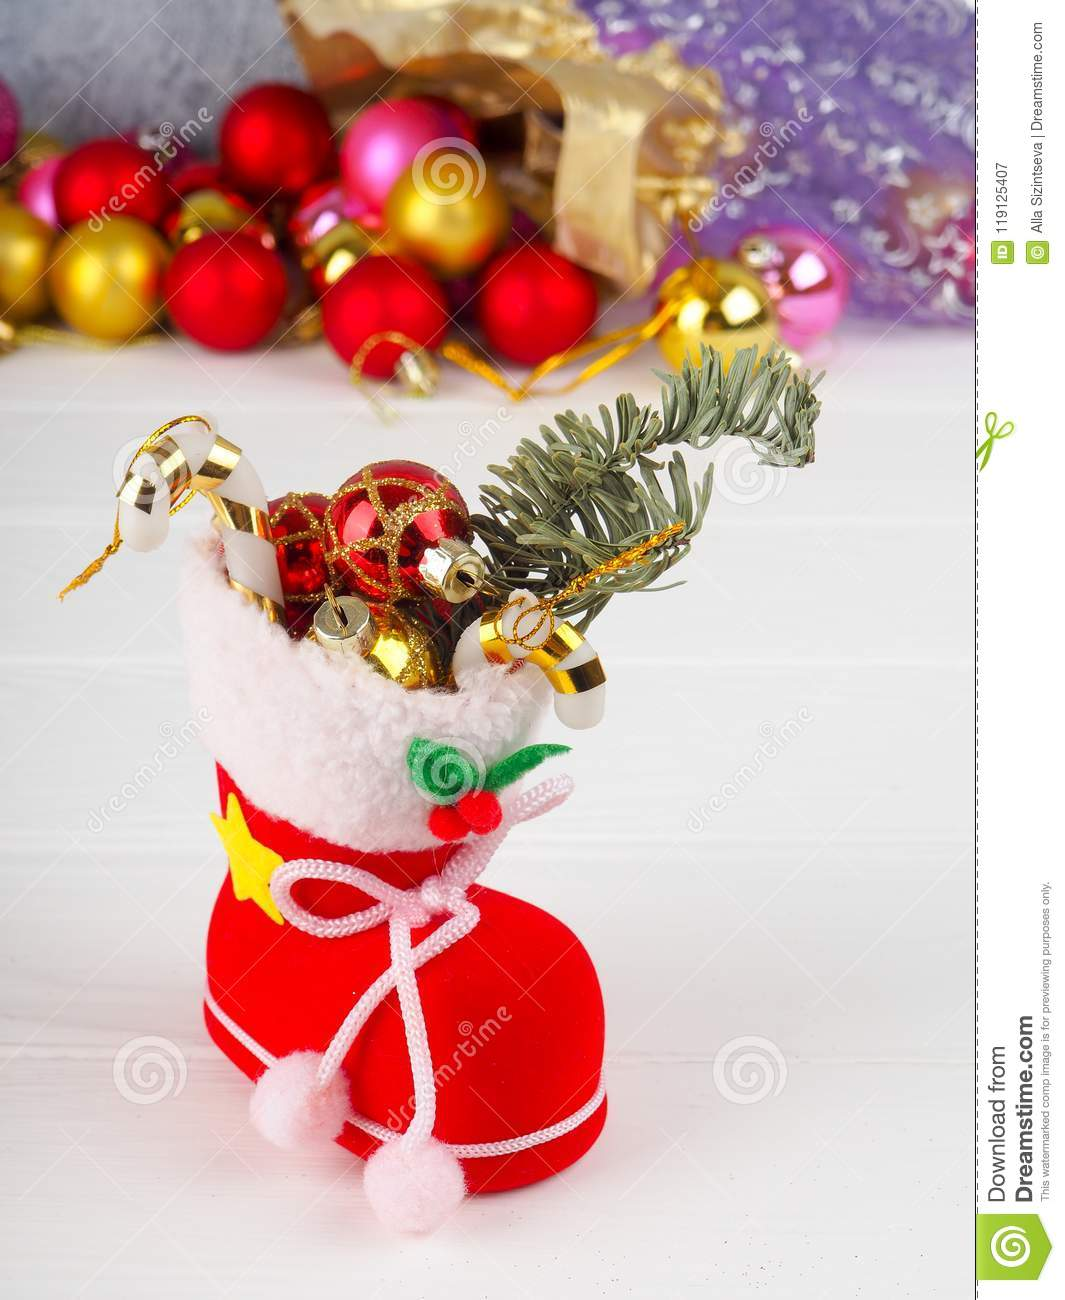 Christmas Boot Stocking Filled Gifts Sprig Christmas Tree Holly And